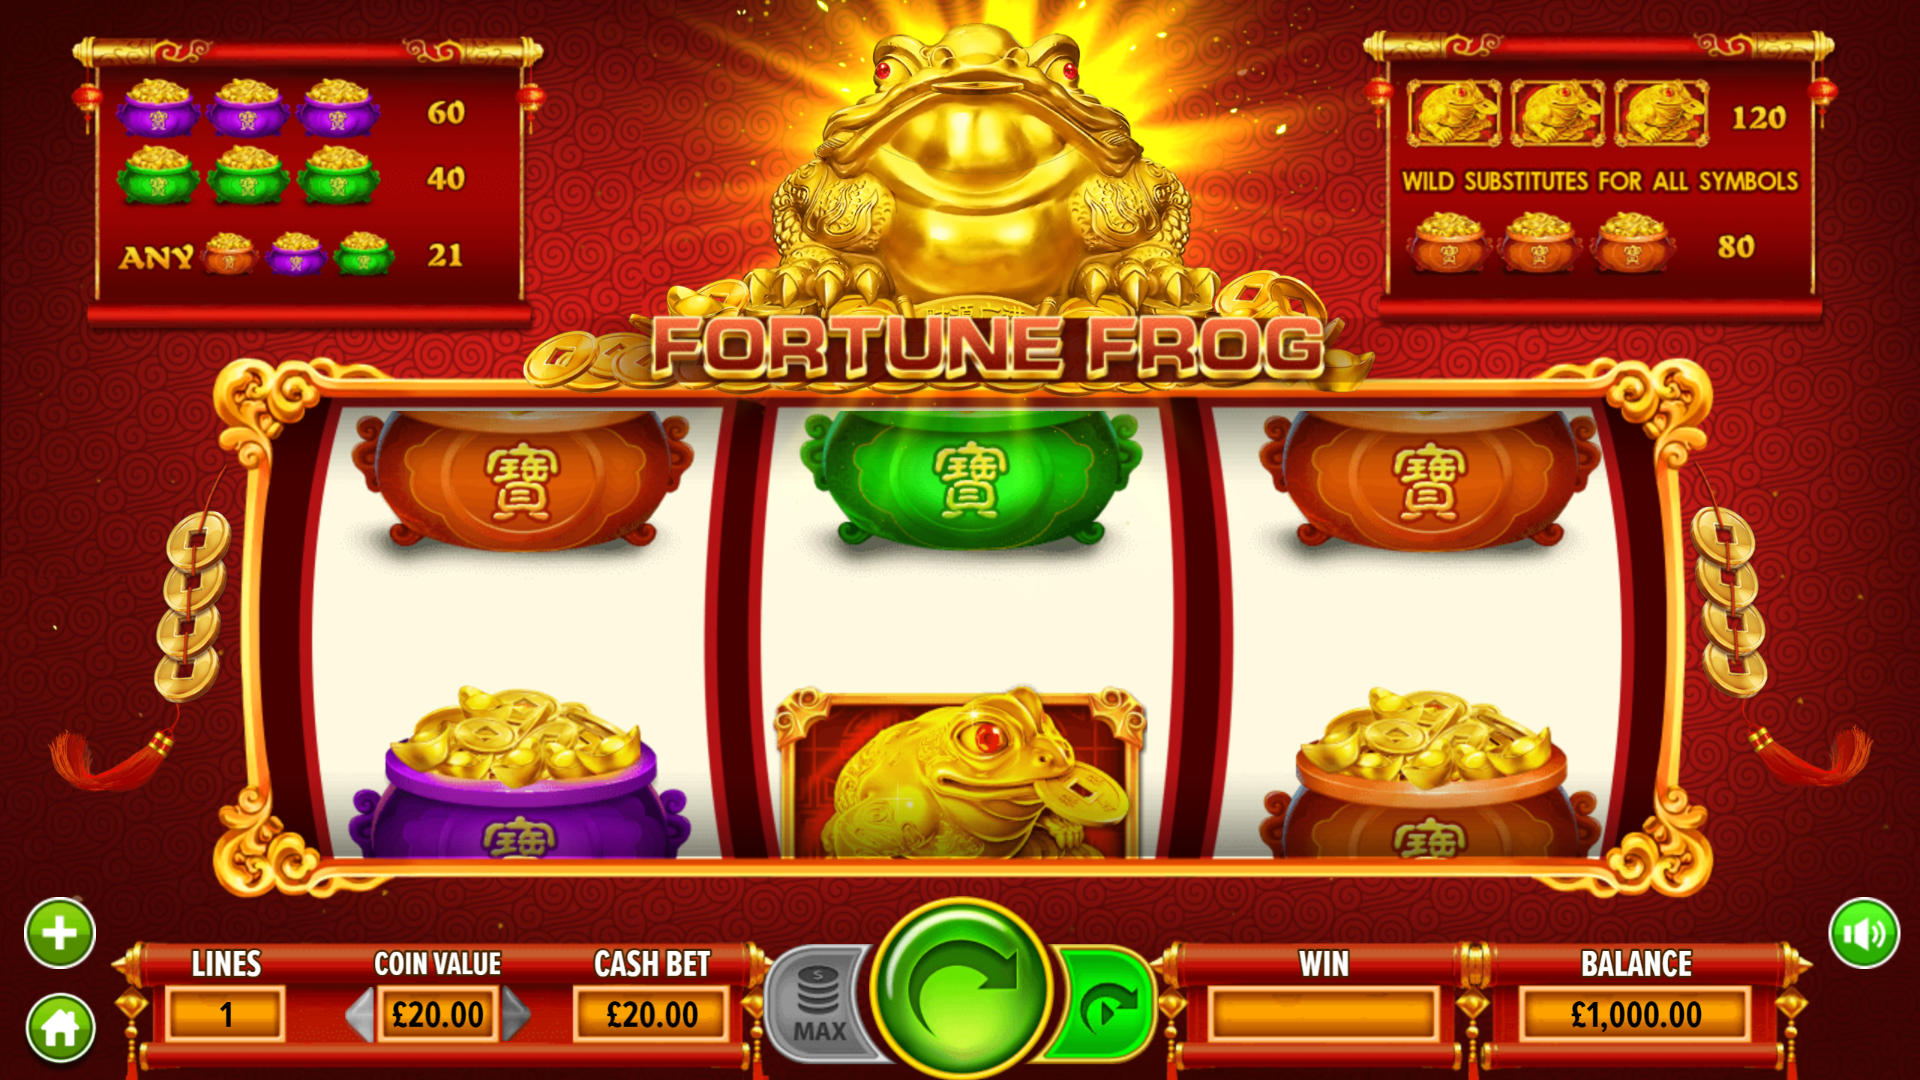 fortune frog game image